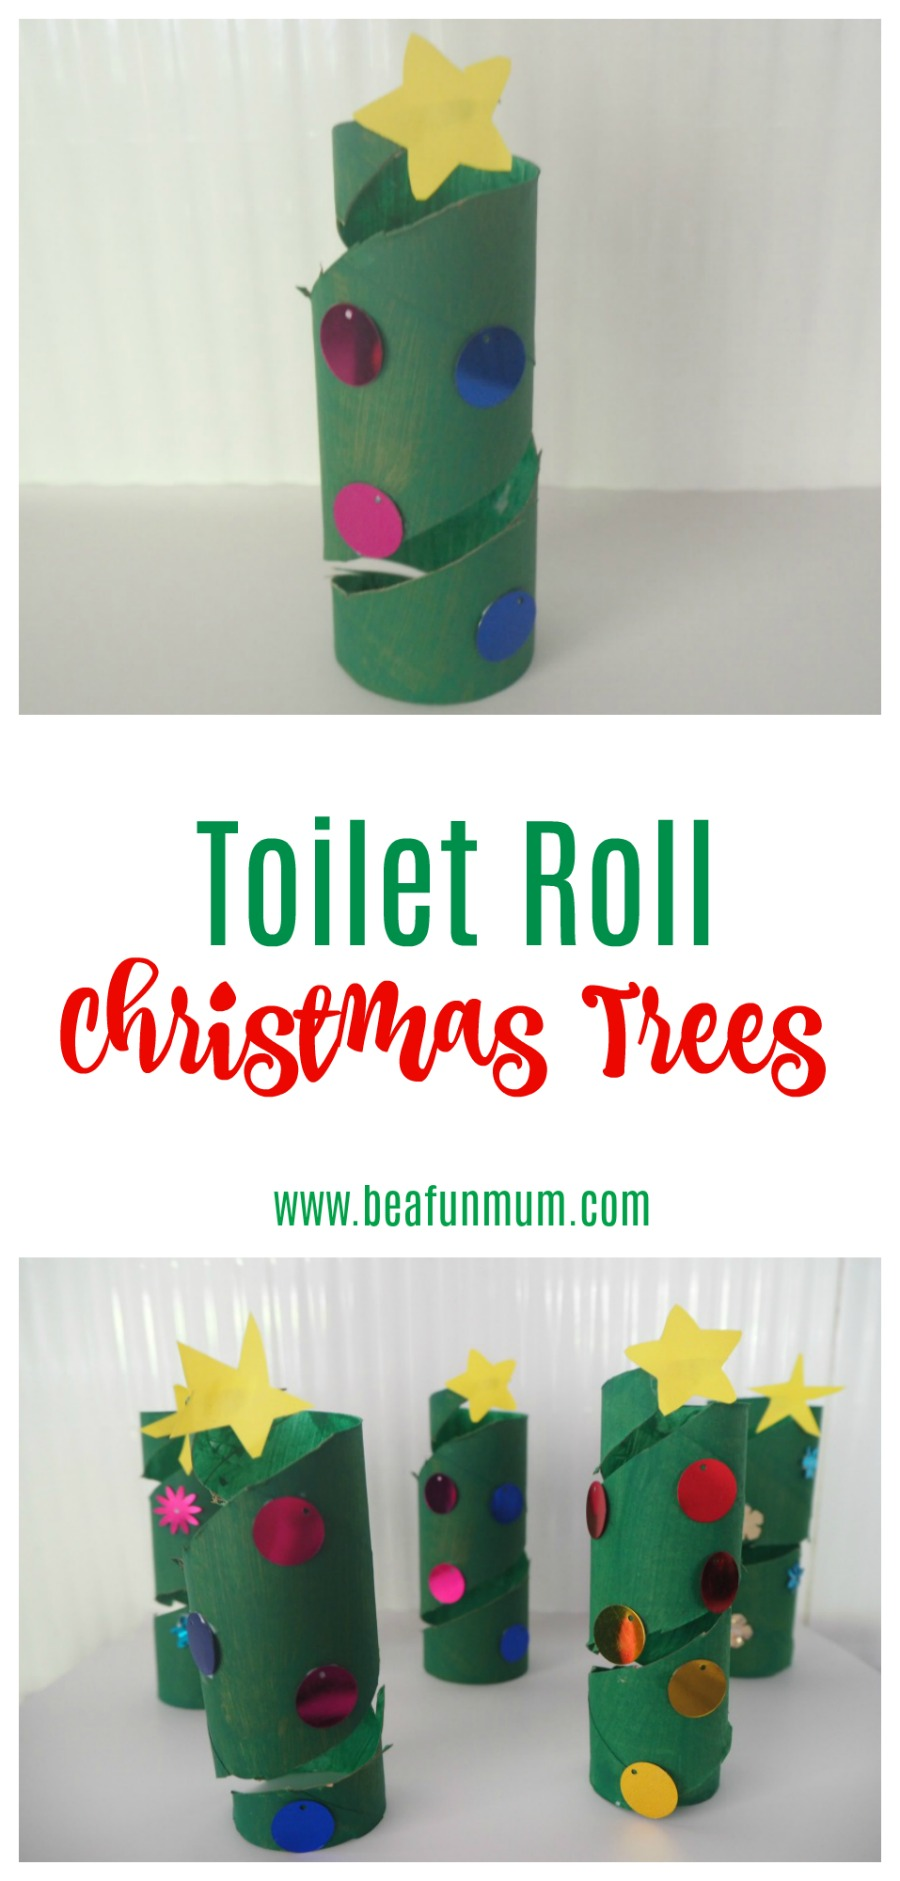 Toilet Roll Christmas Trees